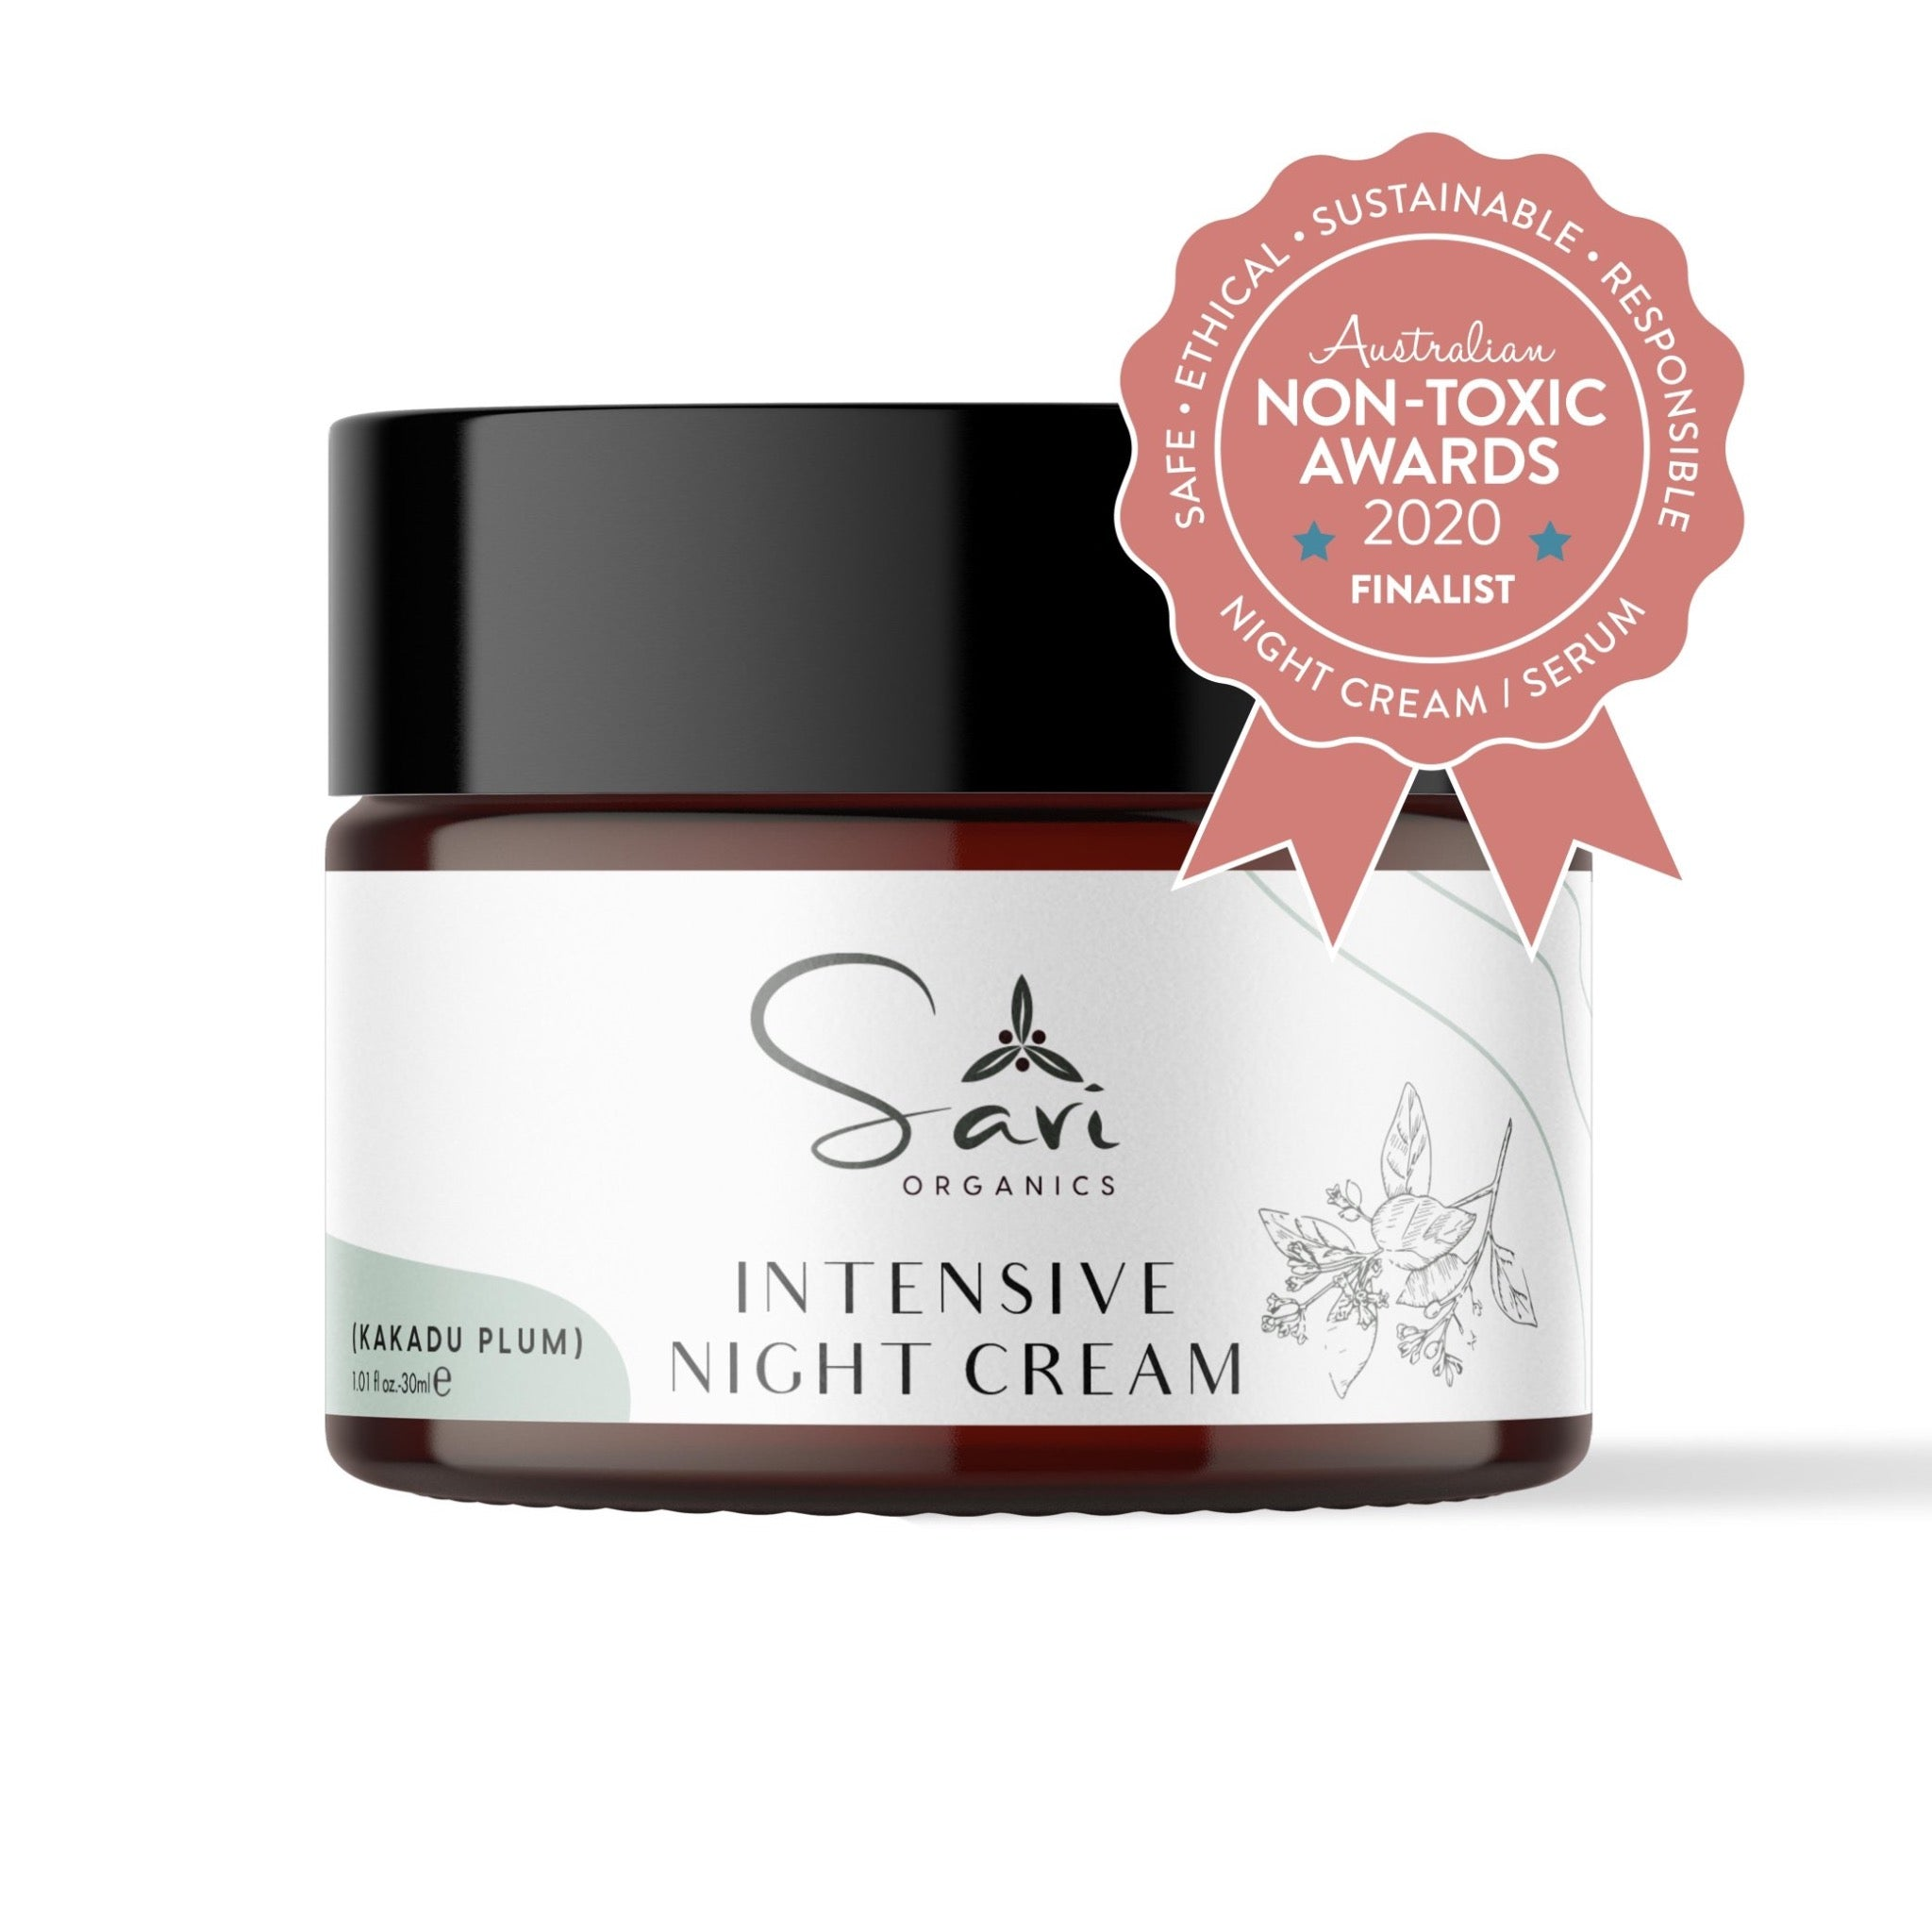 Intensive Night Cream (30 ml) - Finalist at Australian Non-Toxic Awards 2020